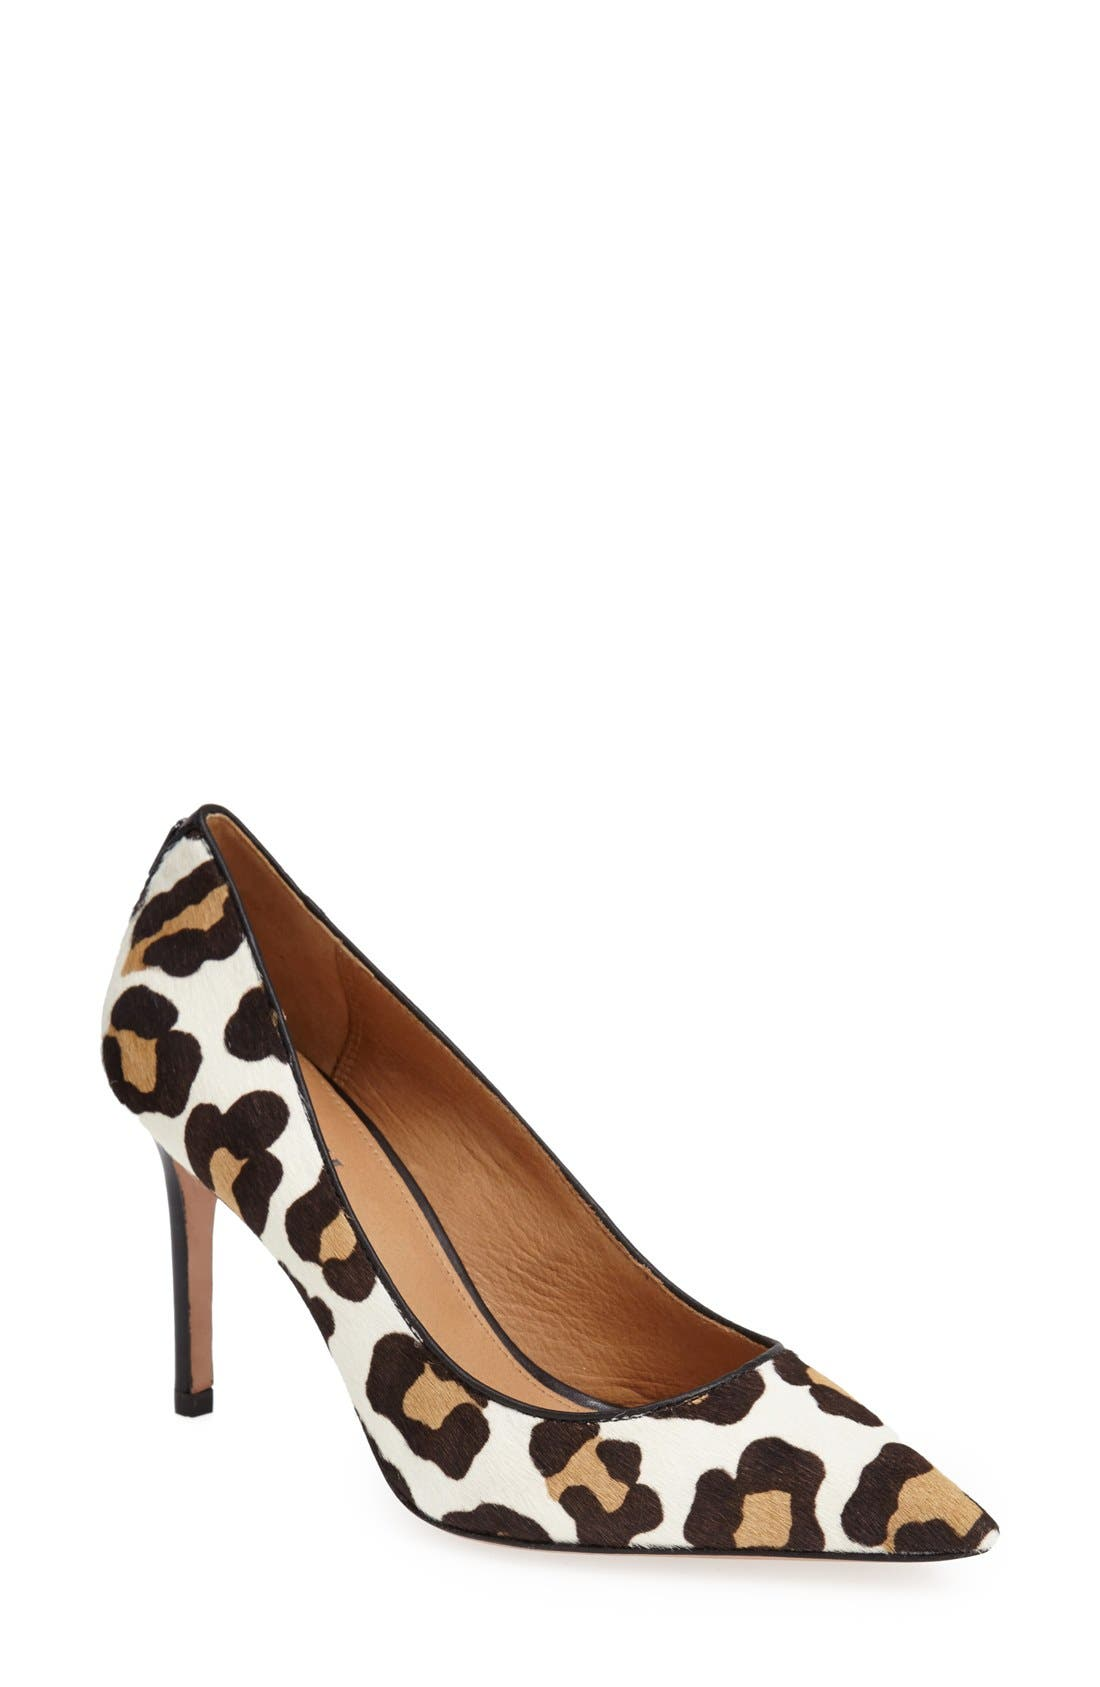 Alternate Image 1 Selected - COACH 'Teddie' Pump (Women)